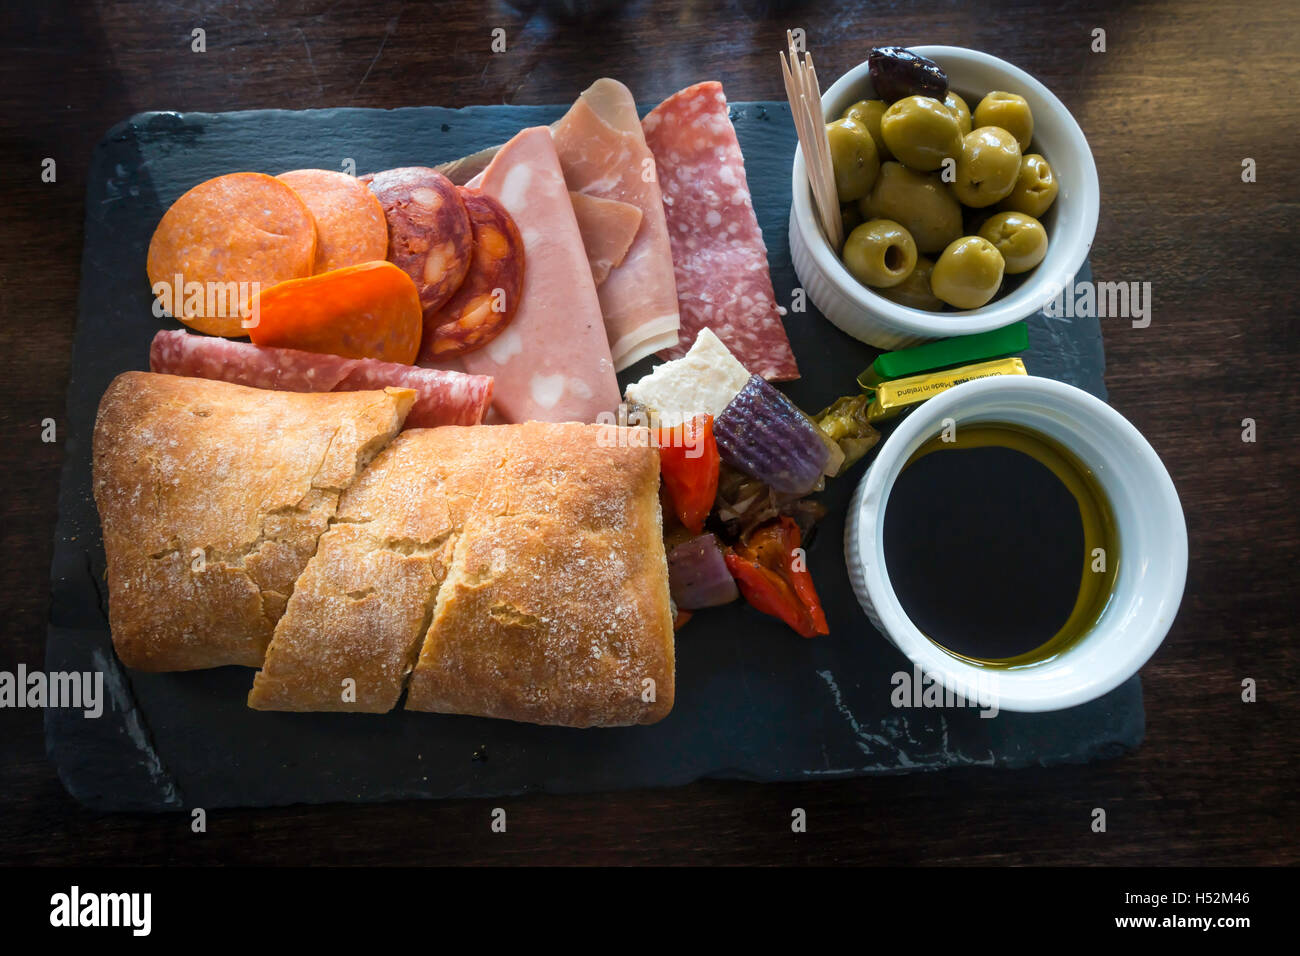 Lunch Time Snack Meal Deli Platter Cold Meats Feta Cheese Ciabatta Stock Photo Alamy